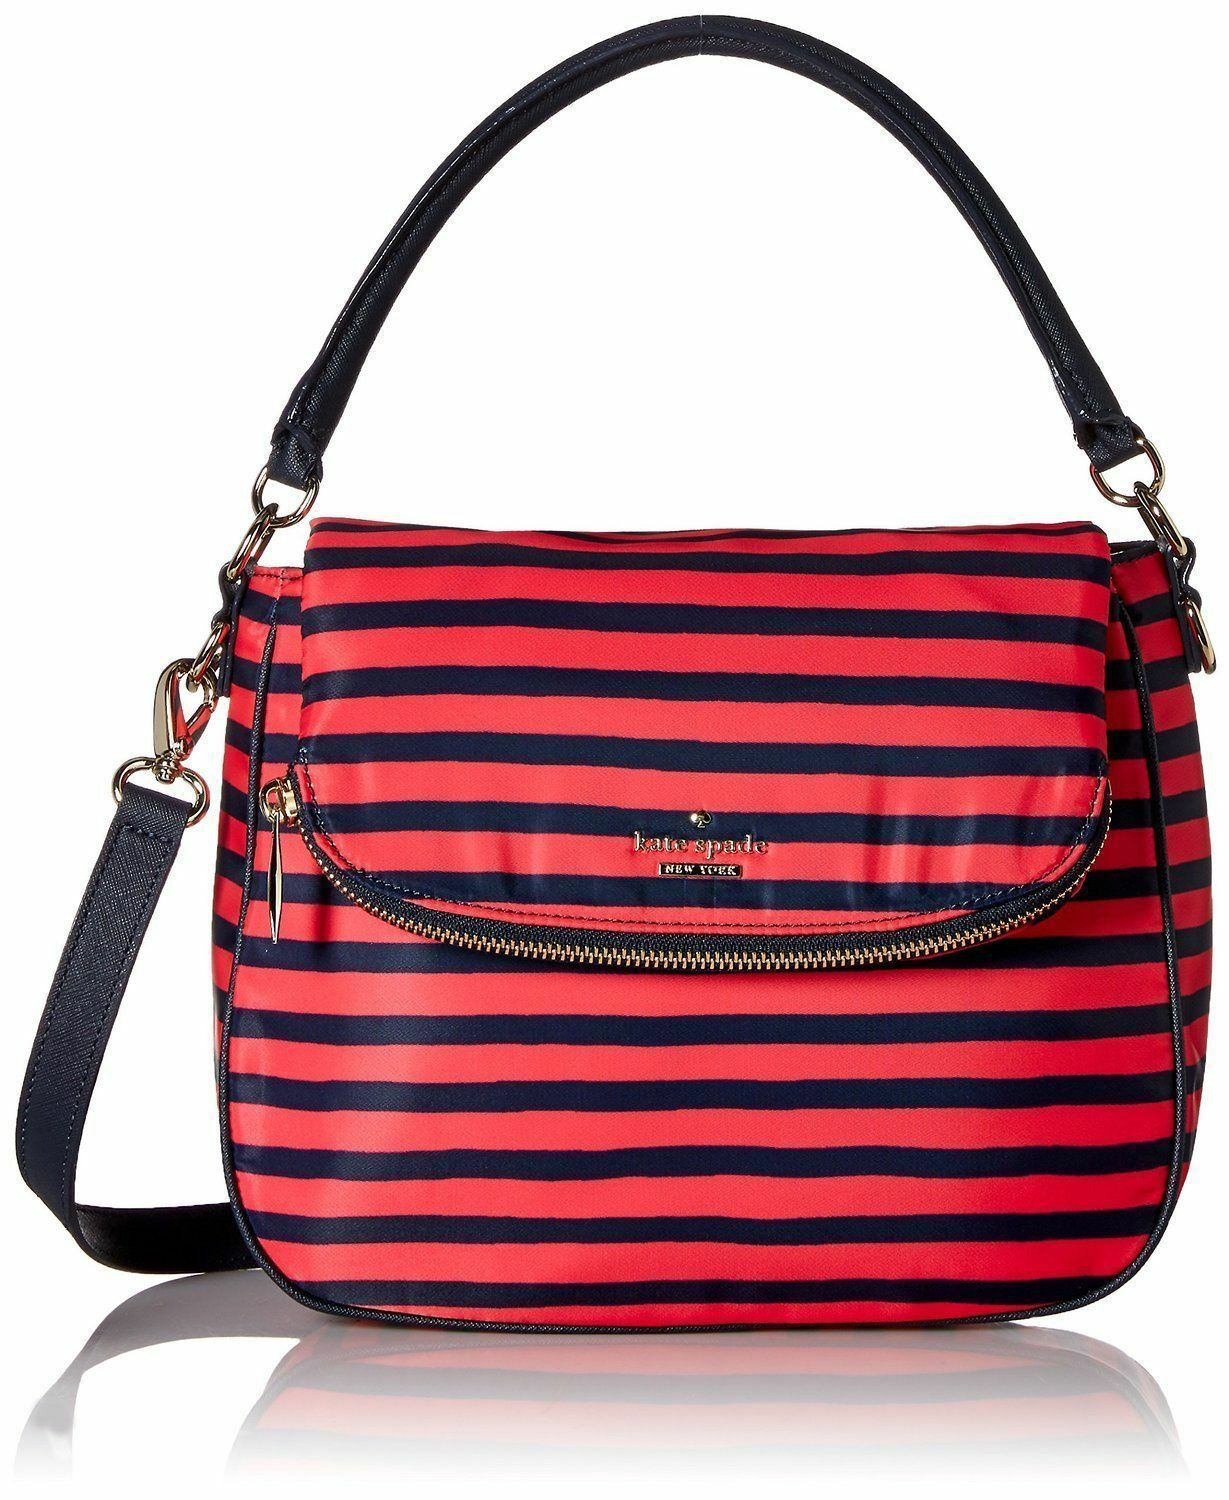 Kate Spade Women Classic Nylon Small Devin Crossbody Bag Black  Geranium/Navy